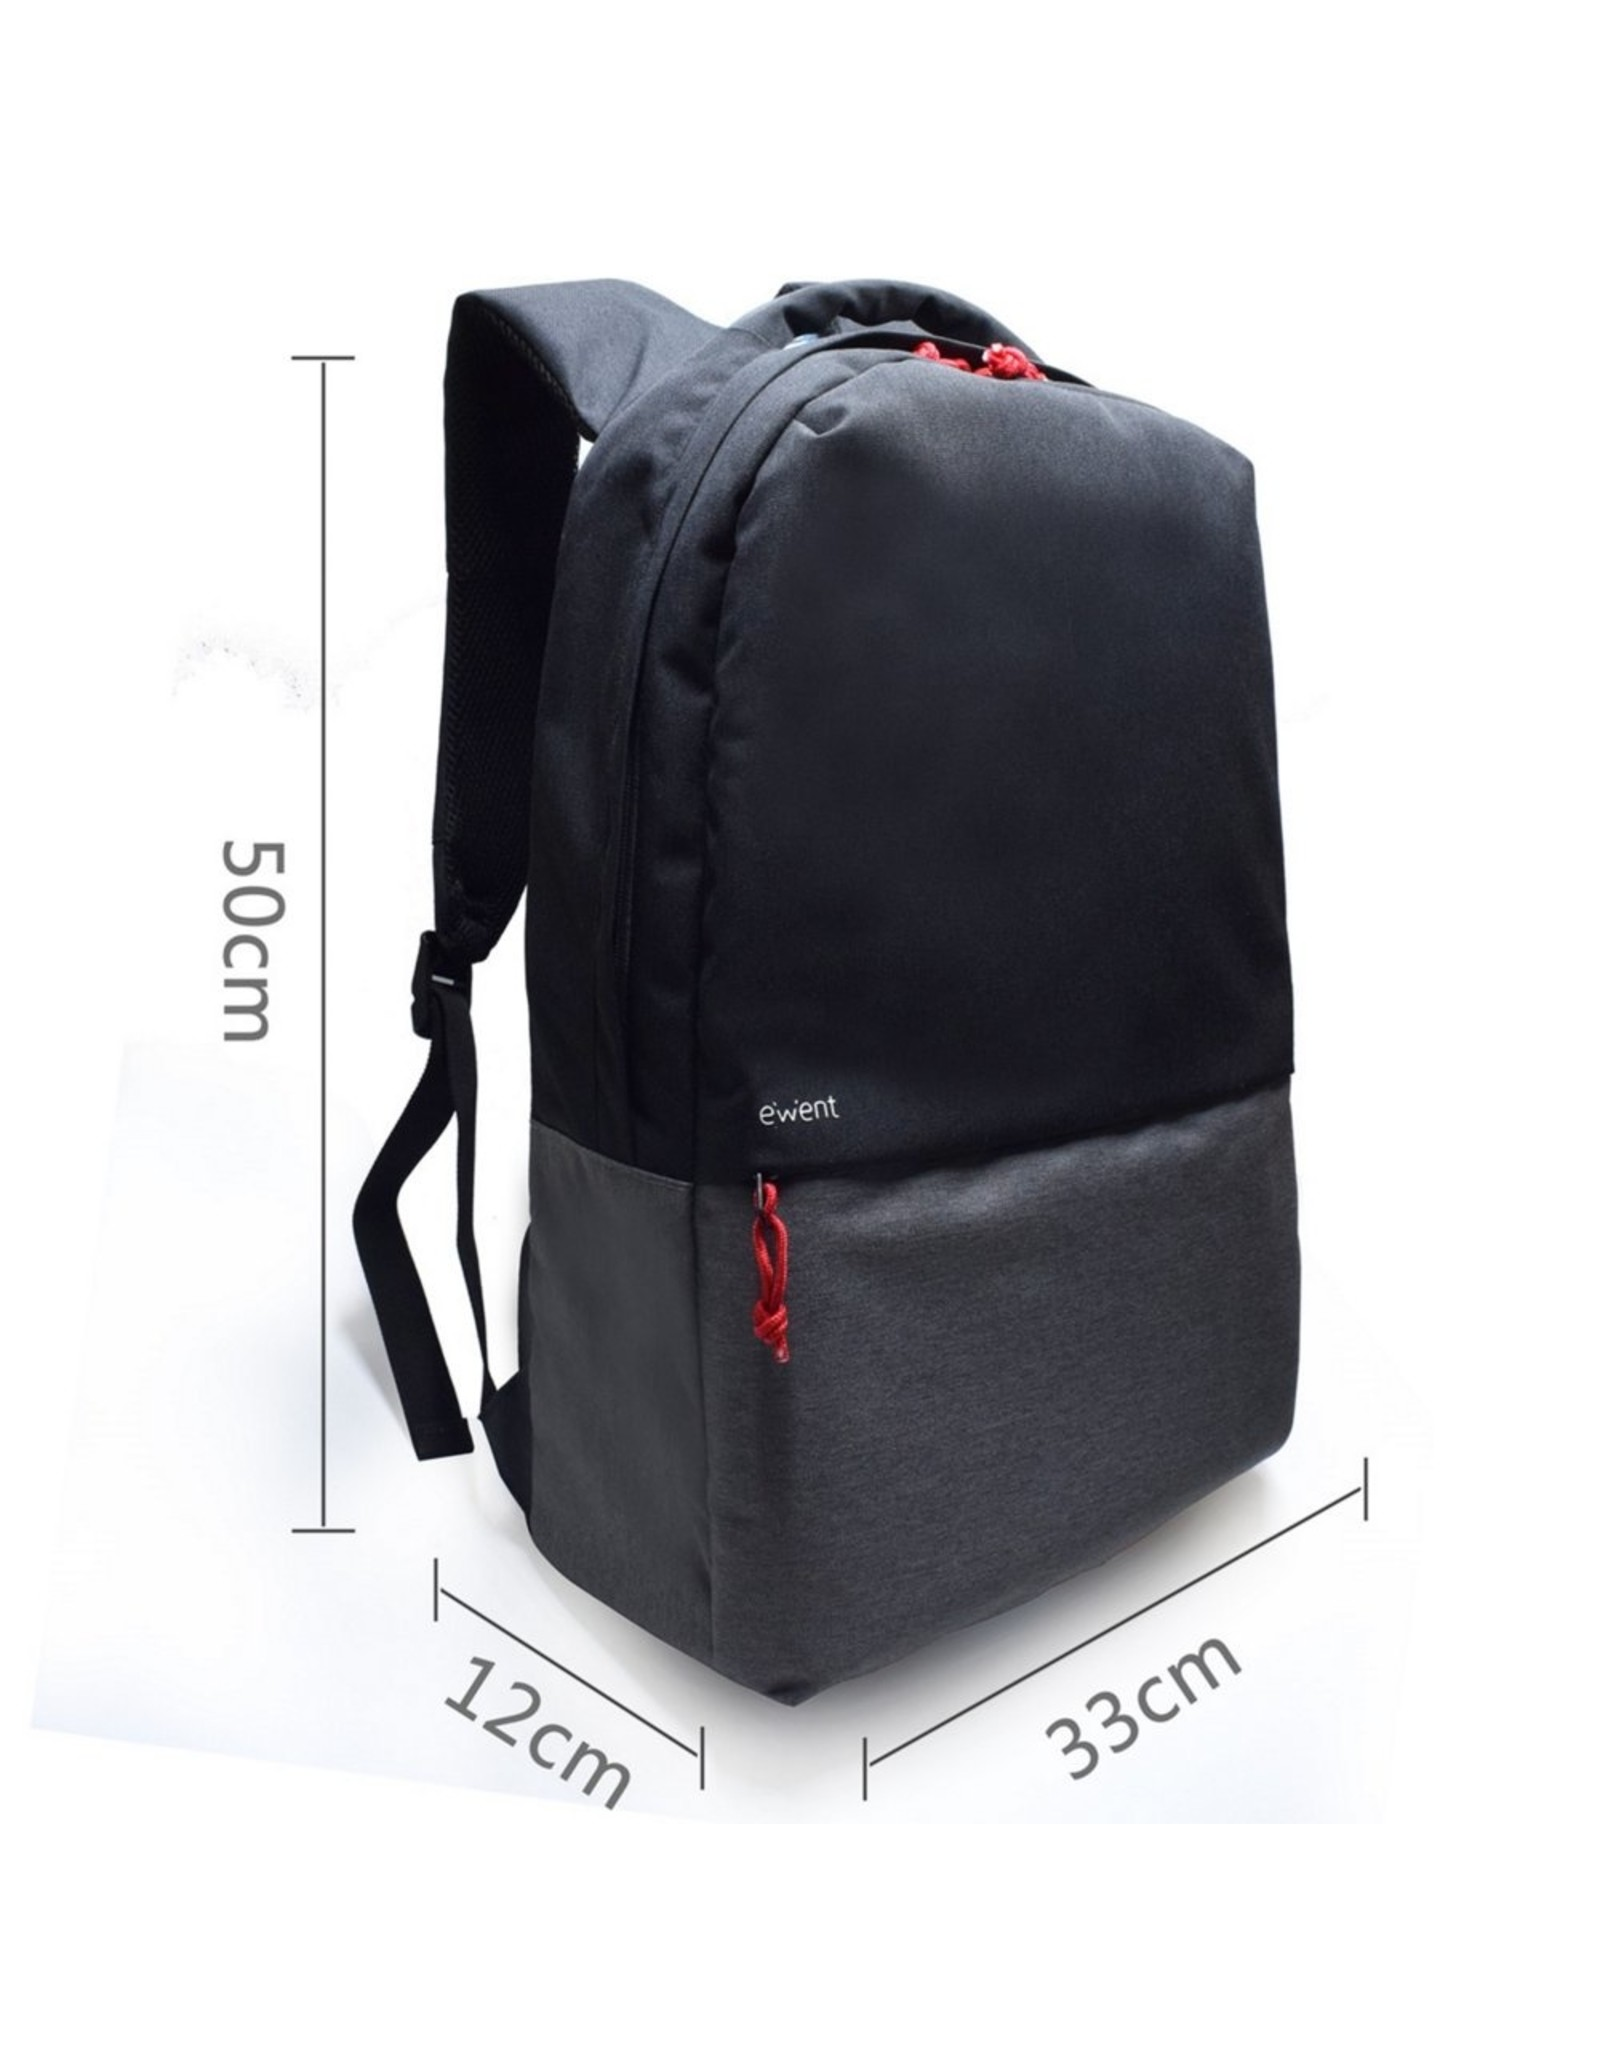 Ewent Urban Notebook Backpack 17.3, BLACK/GREY with USB conn